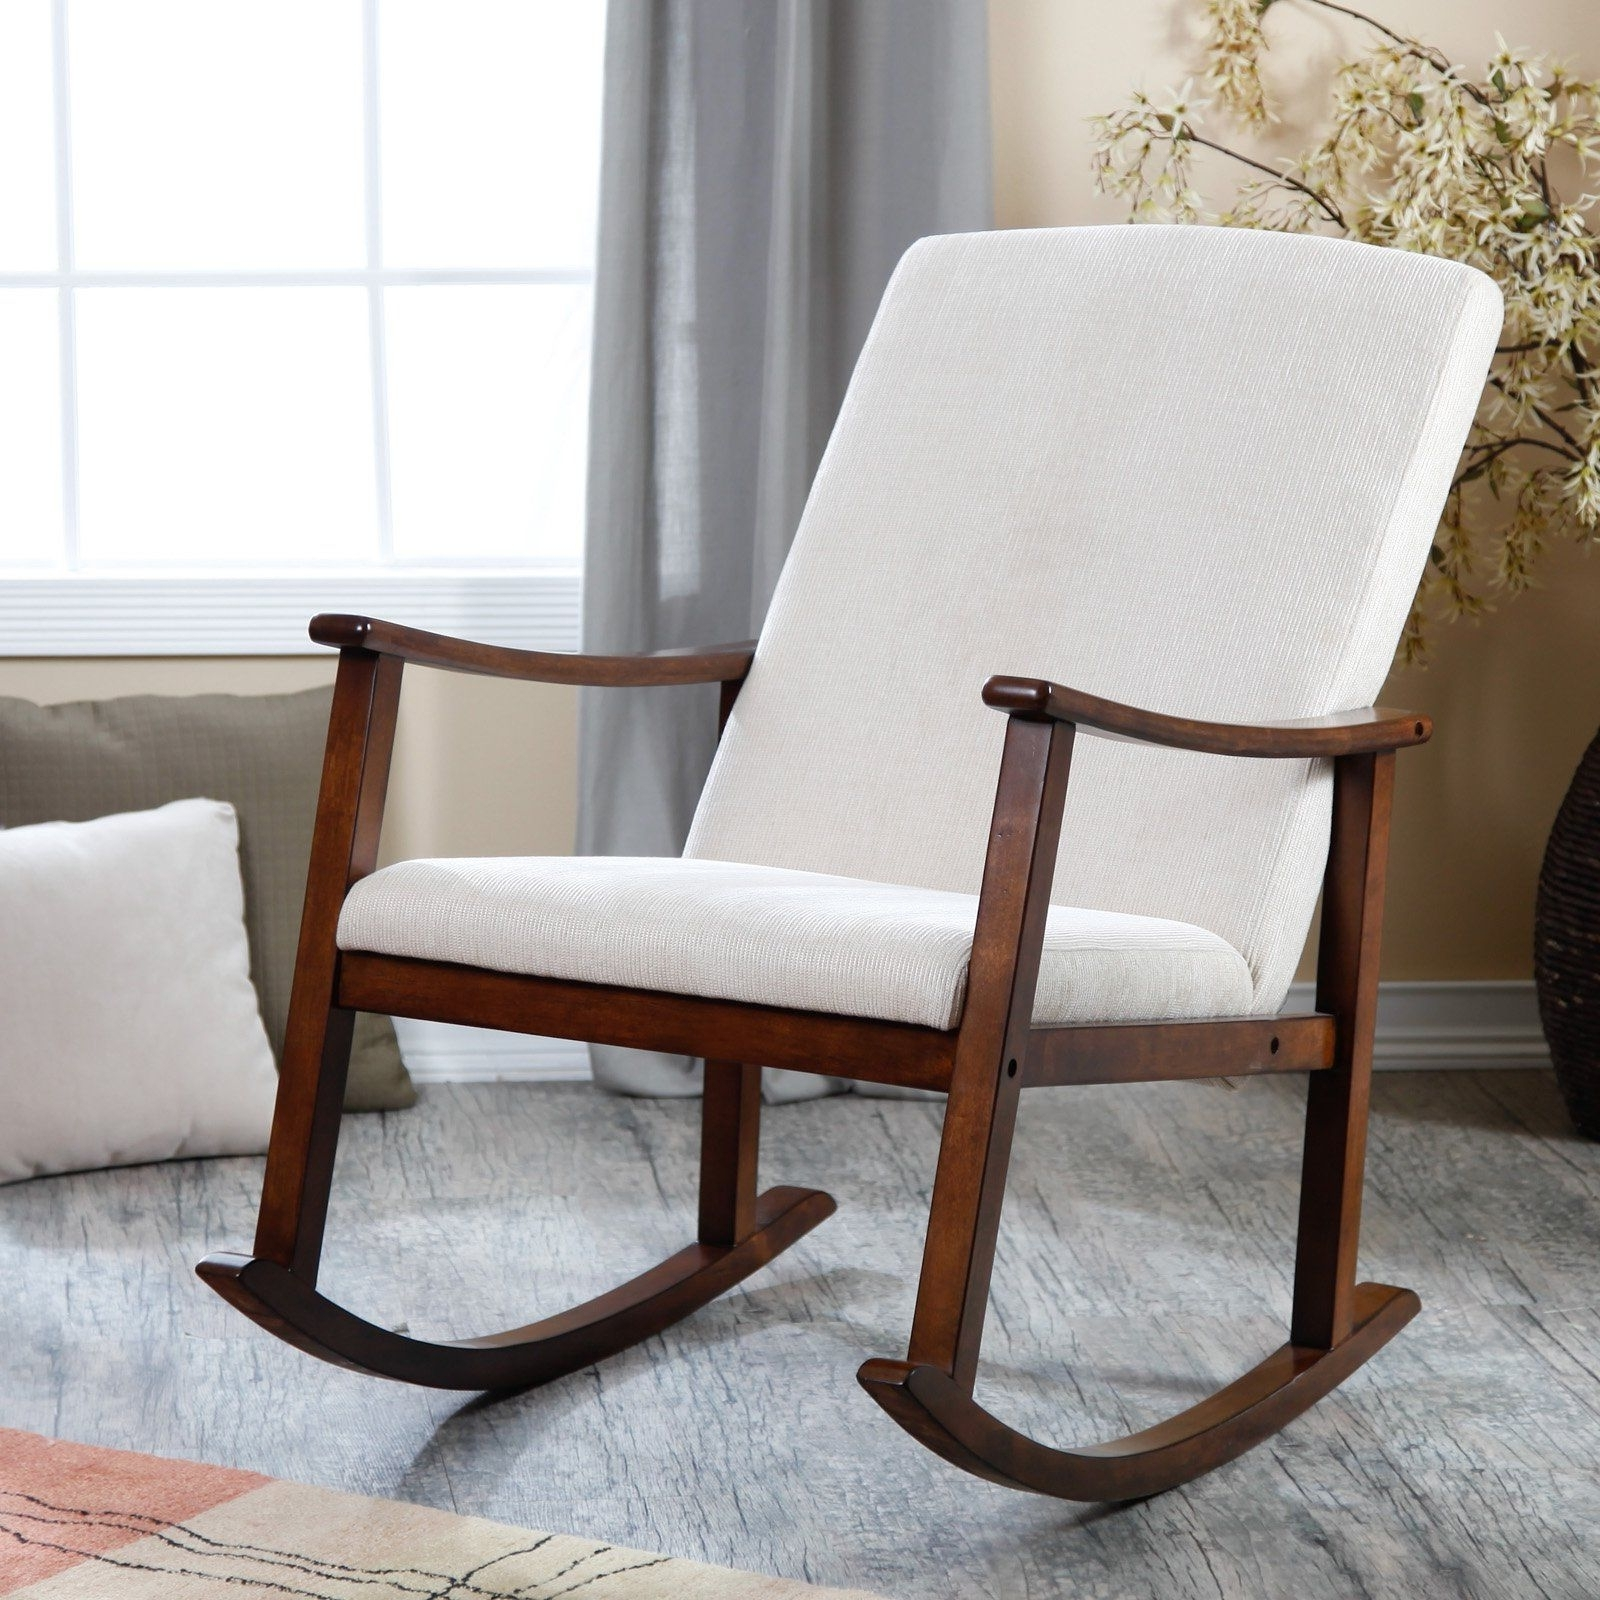 Most Recently Released Have To Have It. Belham Living Holden Modern Rocking Chair Within Rocking Chairs For Living Room (Gallery 11 of 20)